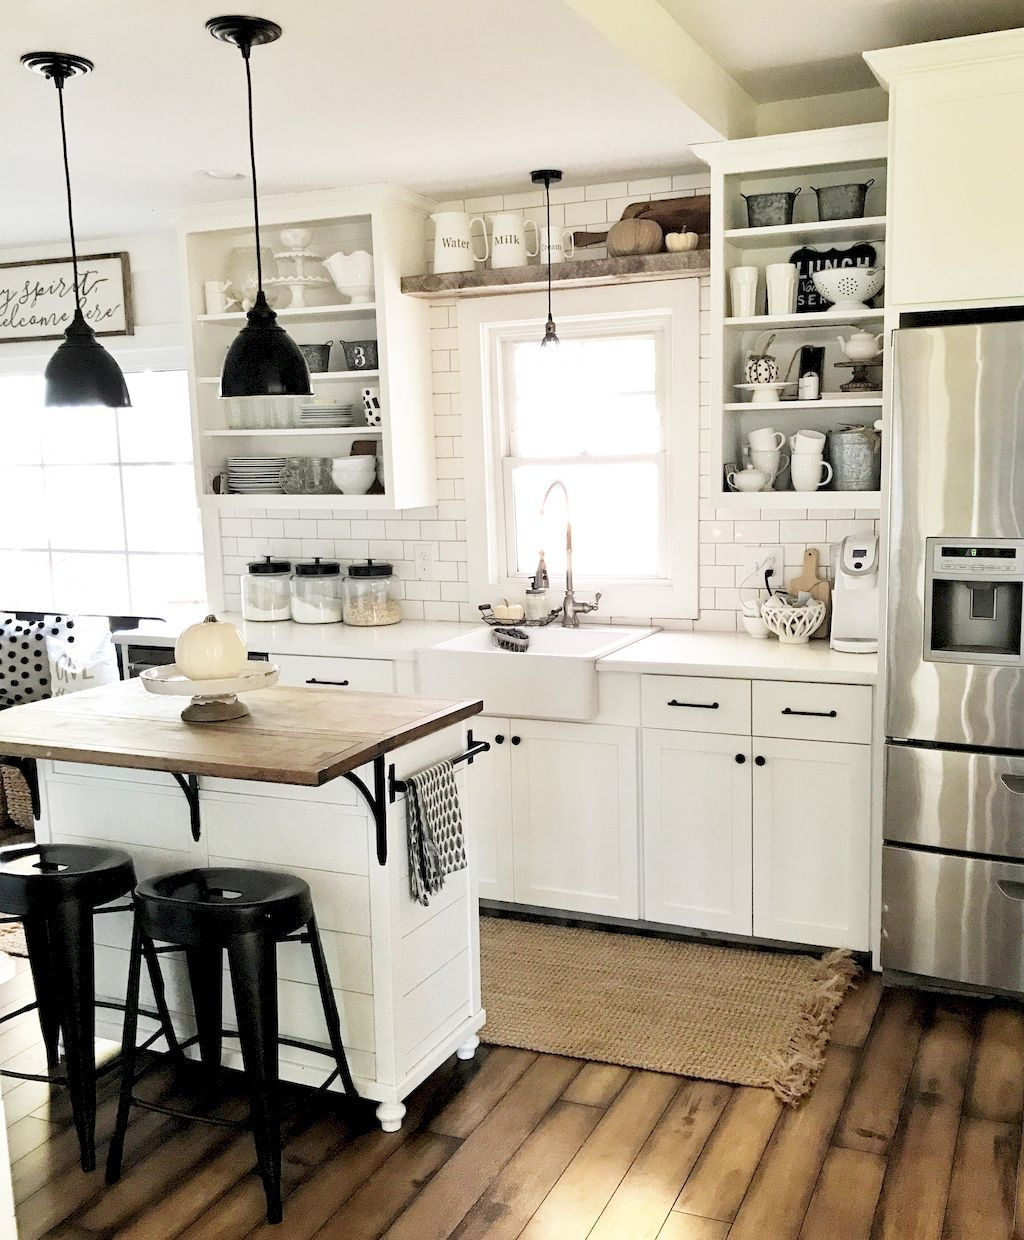 Pin By Michelle On Future Home